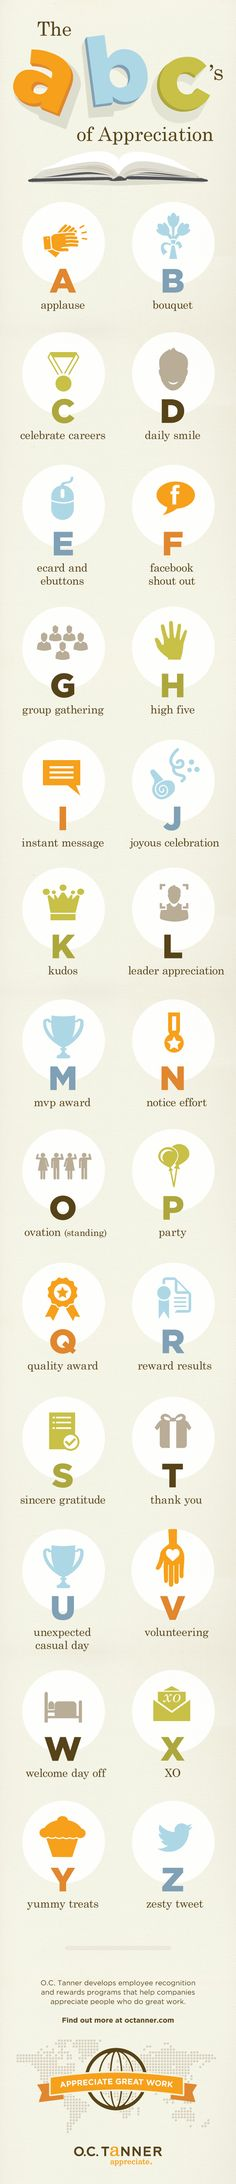 #infographic : The ABCs of Employee Appreciation